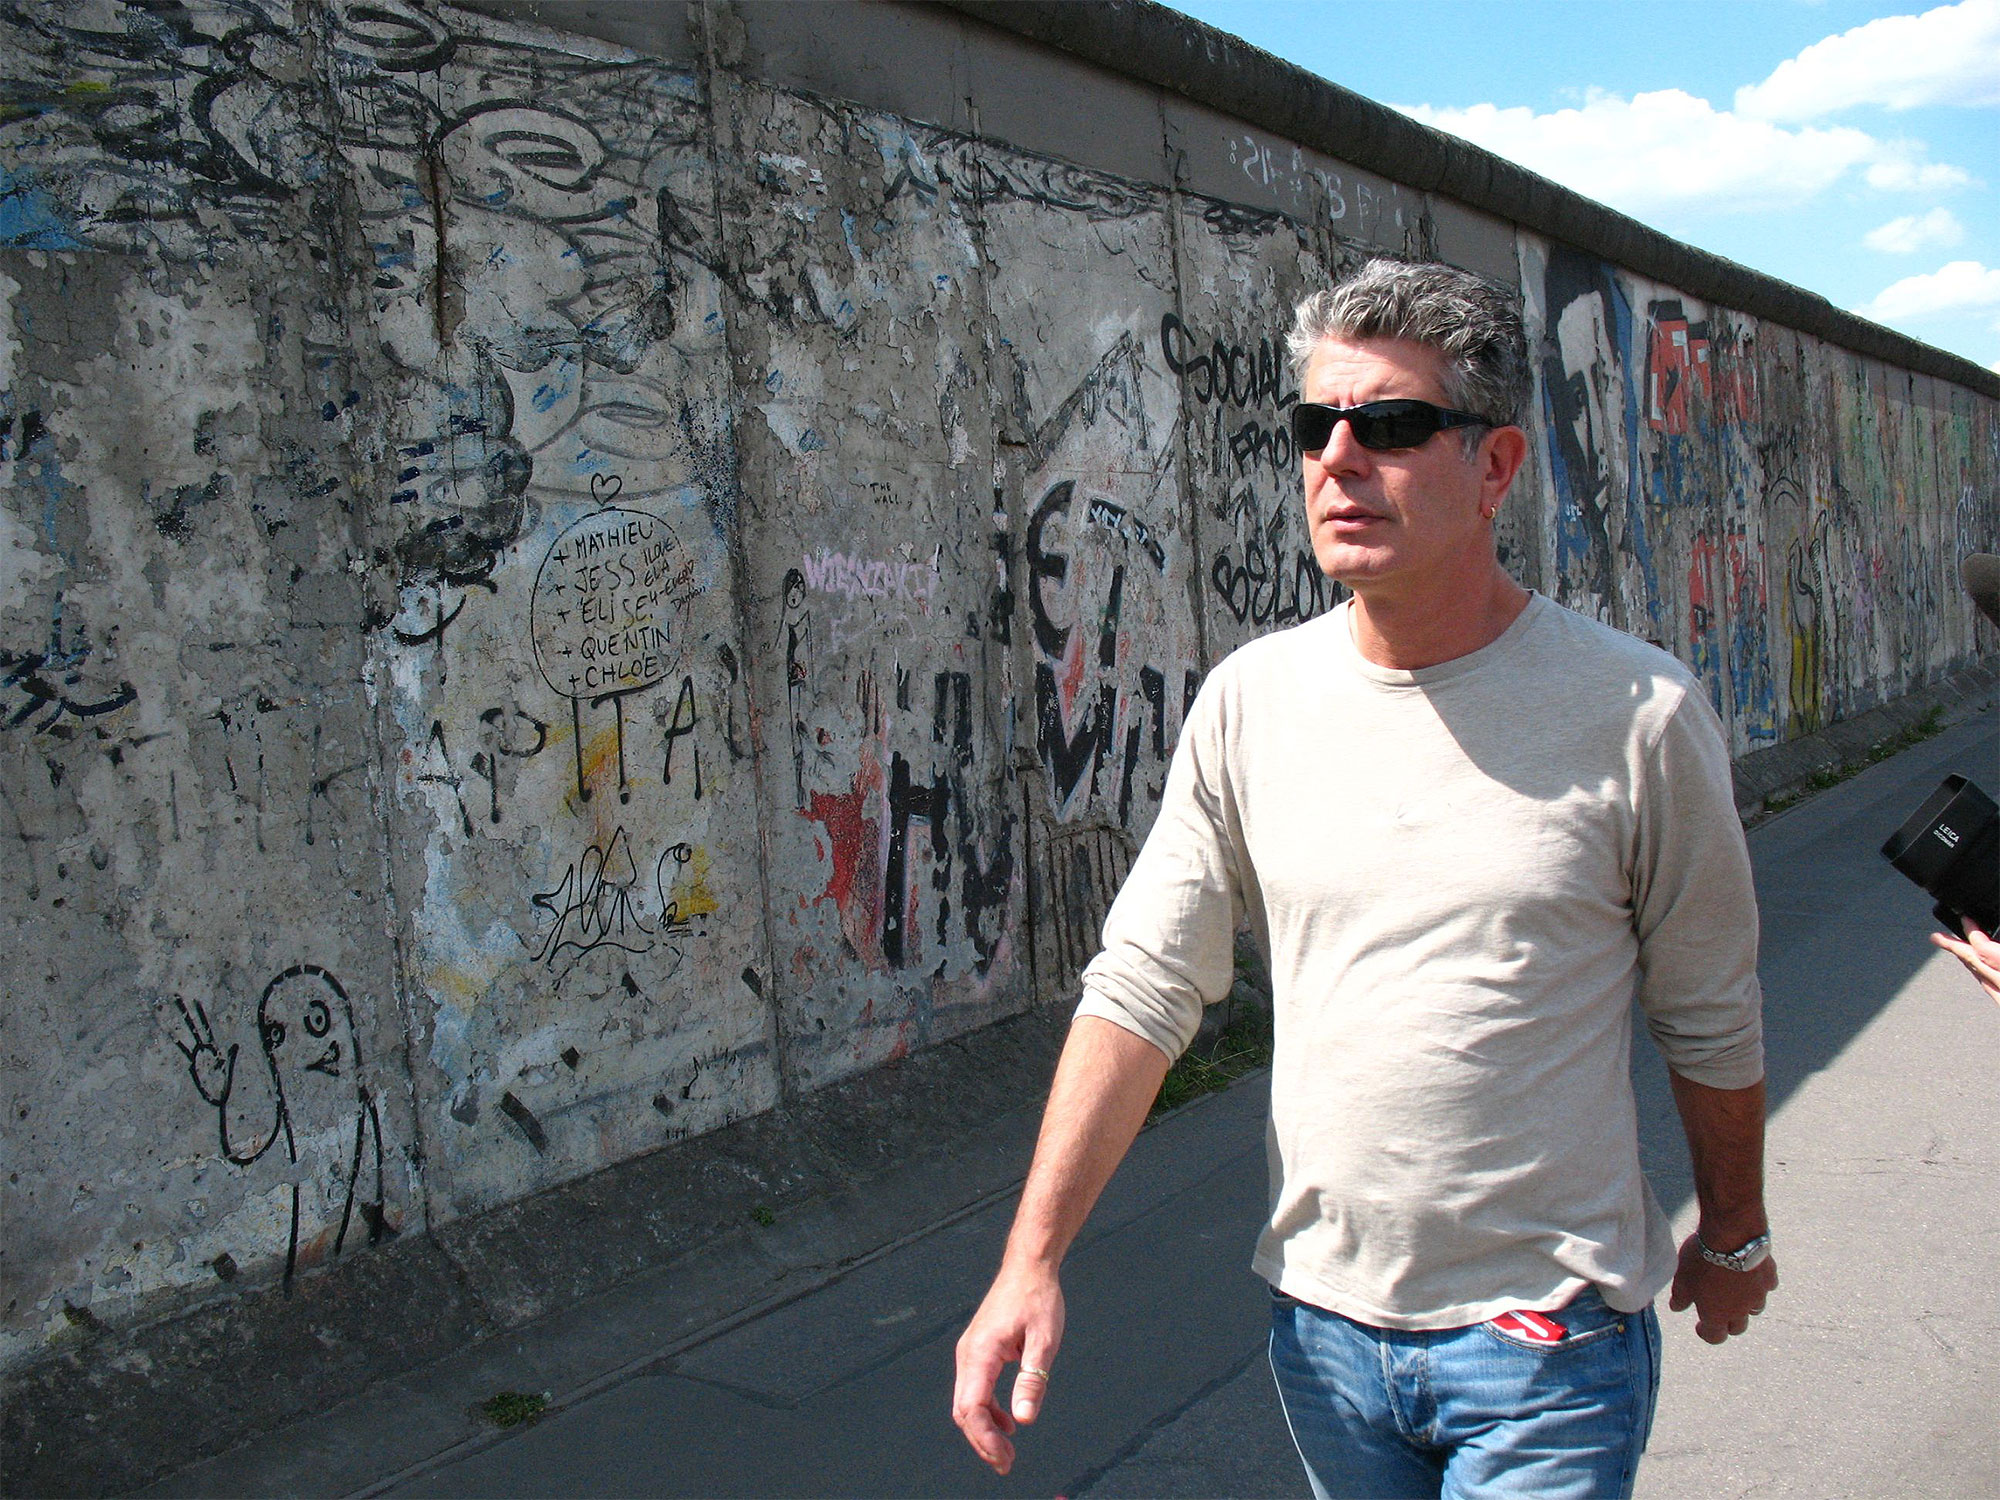 Anthony Bourdain - No Reservations - 2005